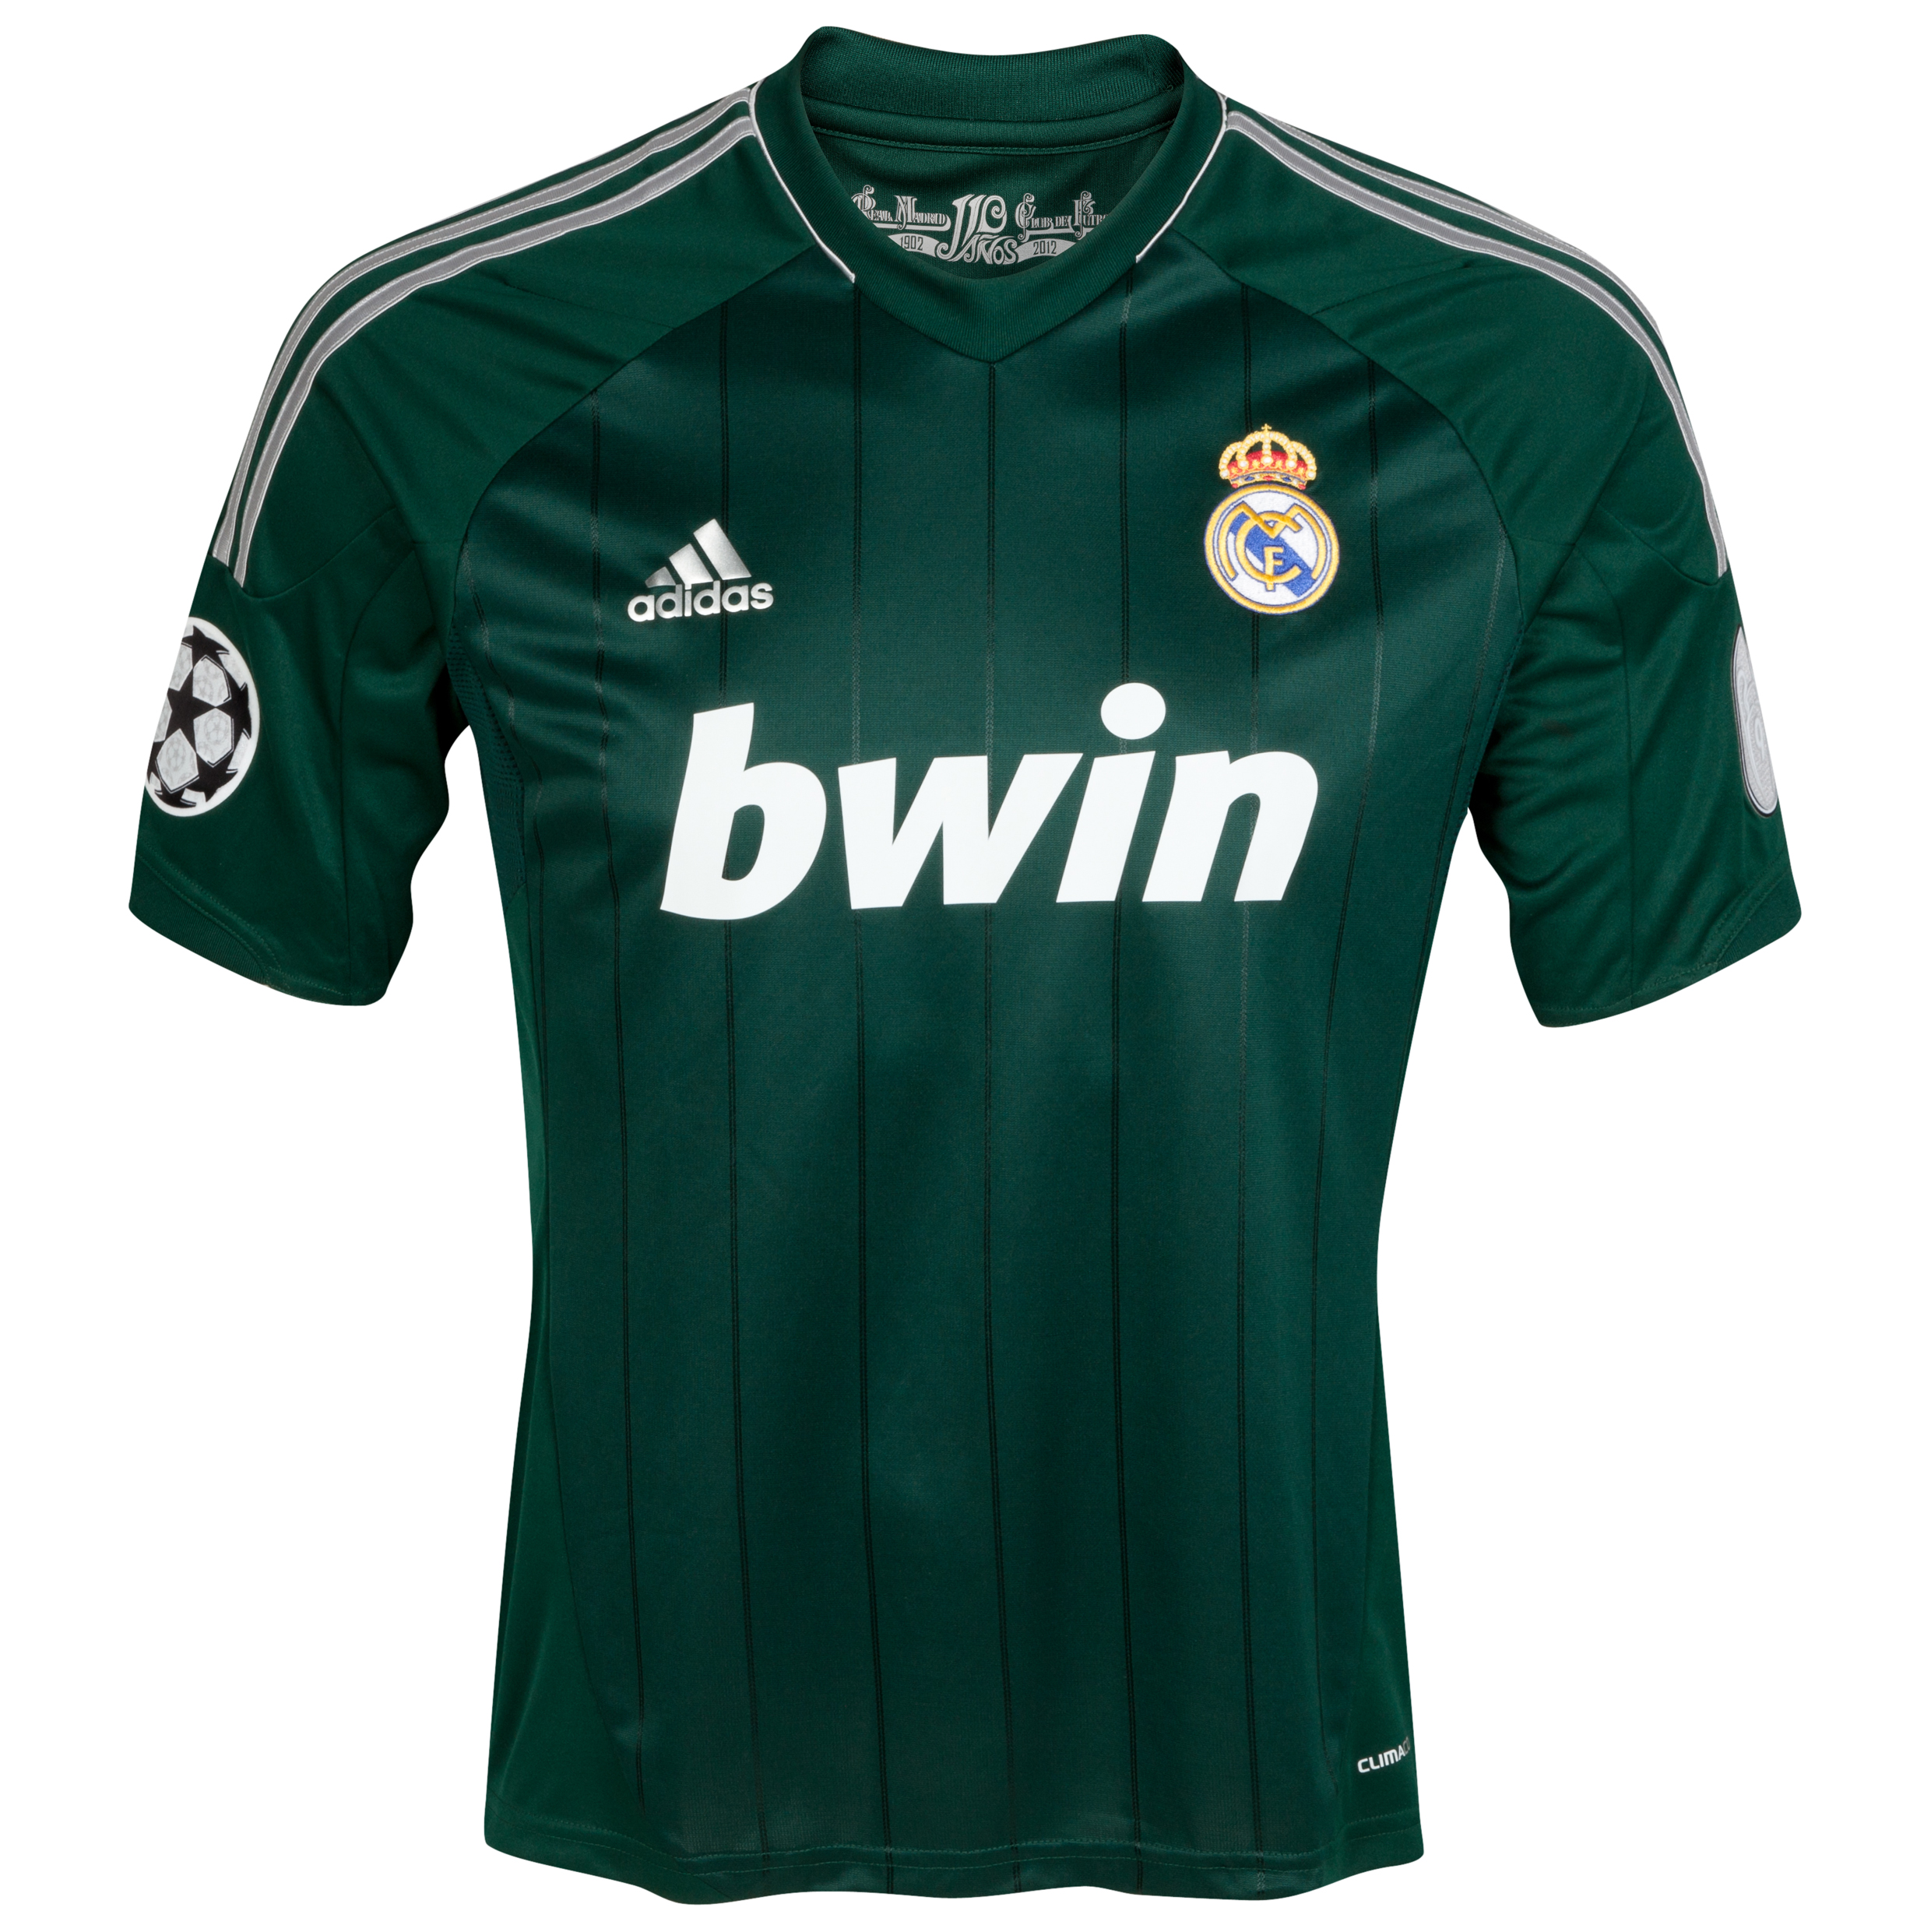 Real Madrid UEFA Champions League Third Shirt 2012/13 Youths